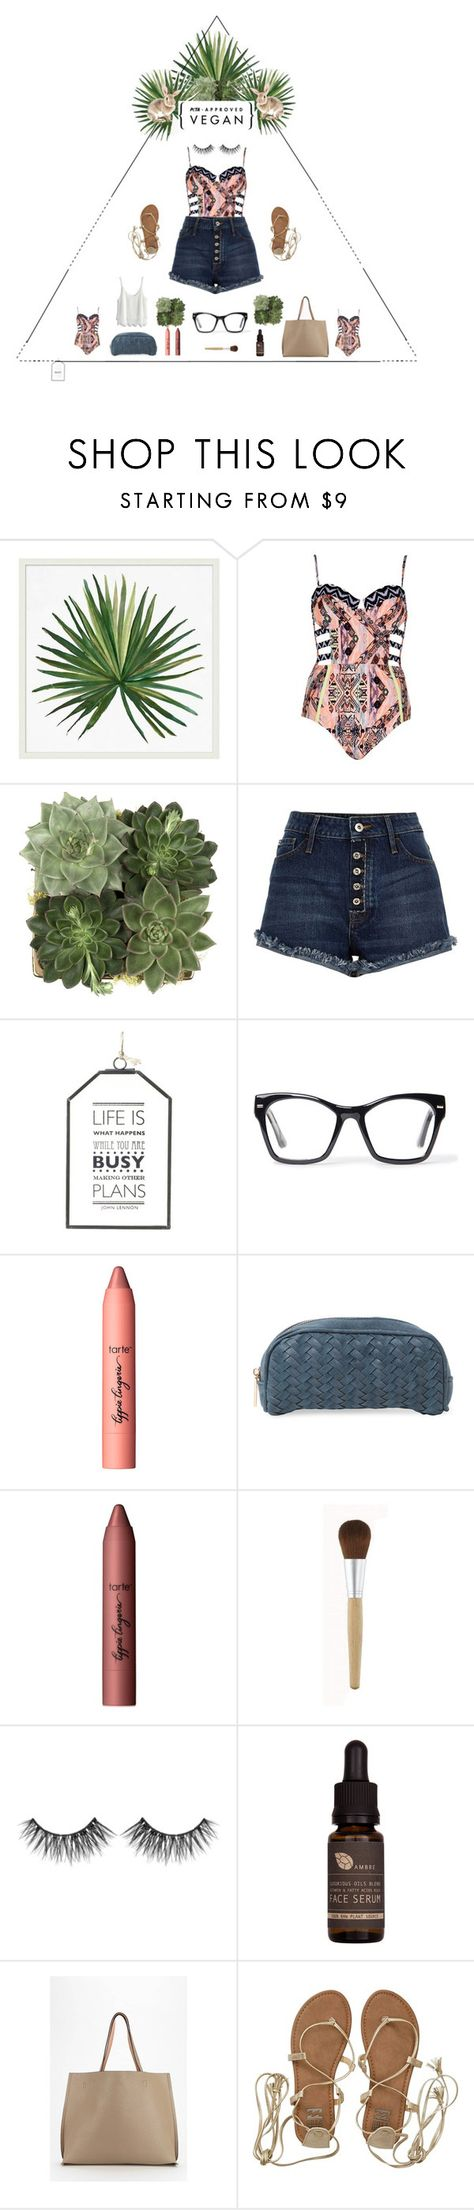 """Beach Party"" by fashion-frugavore on Polyvore featuring Pottery Barn, River Island, Jayson Home, Spitfire, tarte, Deux Lux, Huda Beauty, AMBRE, Urban Outfitters and Billabong"